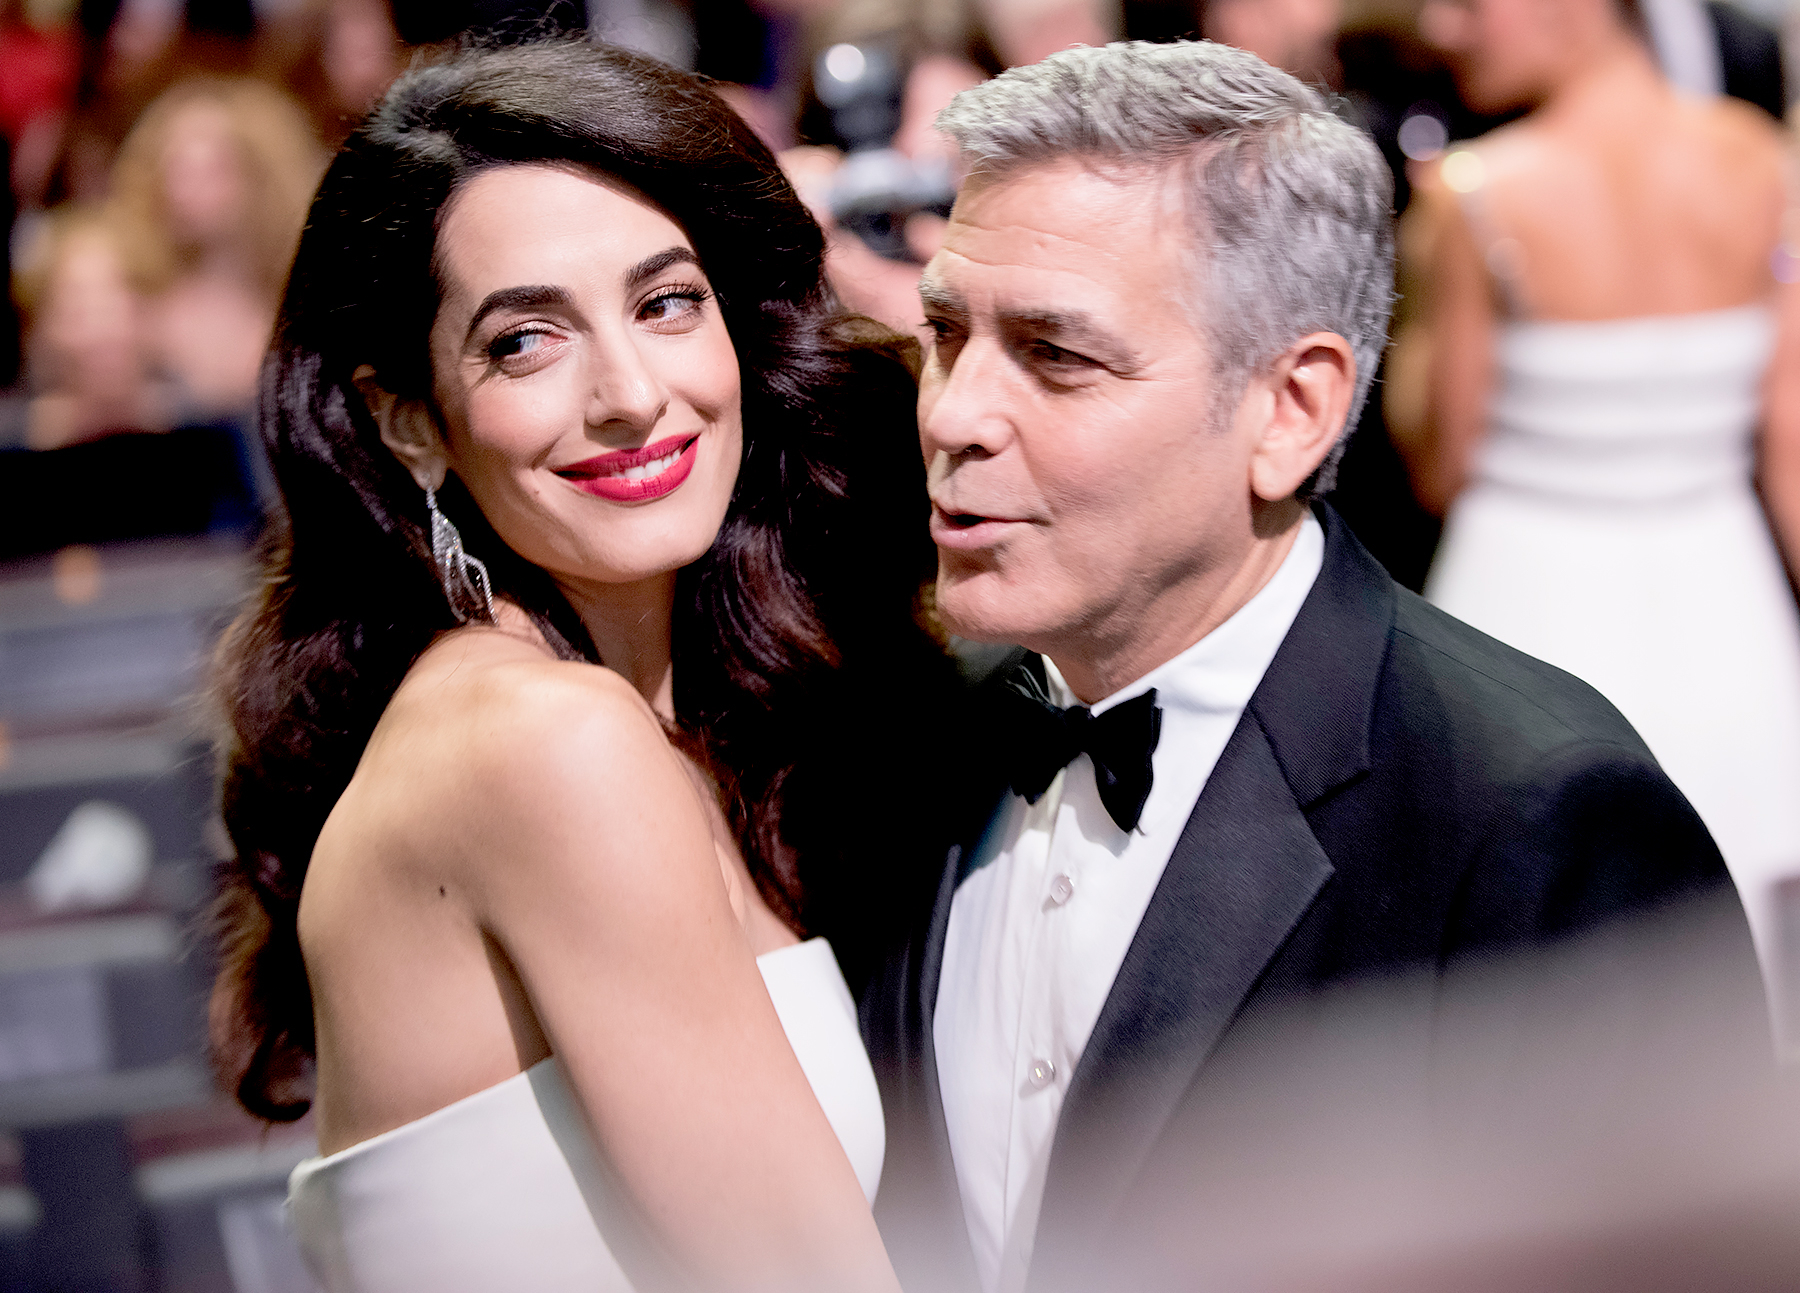 Amal Clooney and George Clooney prior to the Cesar Film Awards Ceremony at Salle Pleyel on February 24, 2017 in Paris, France.